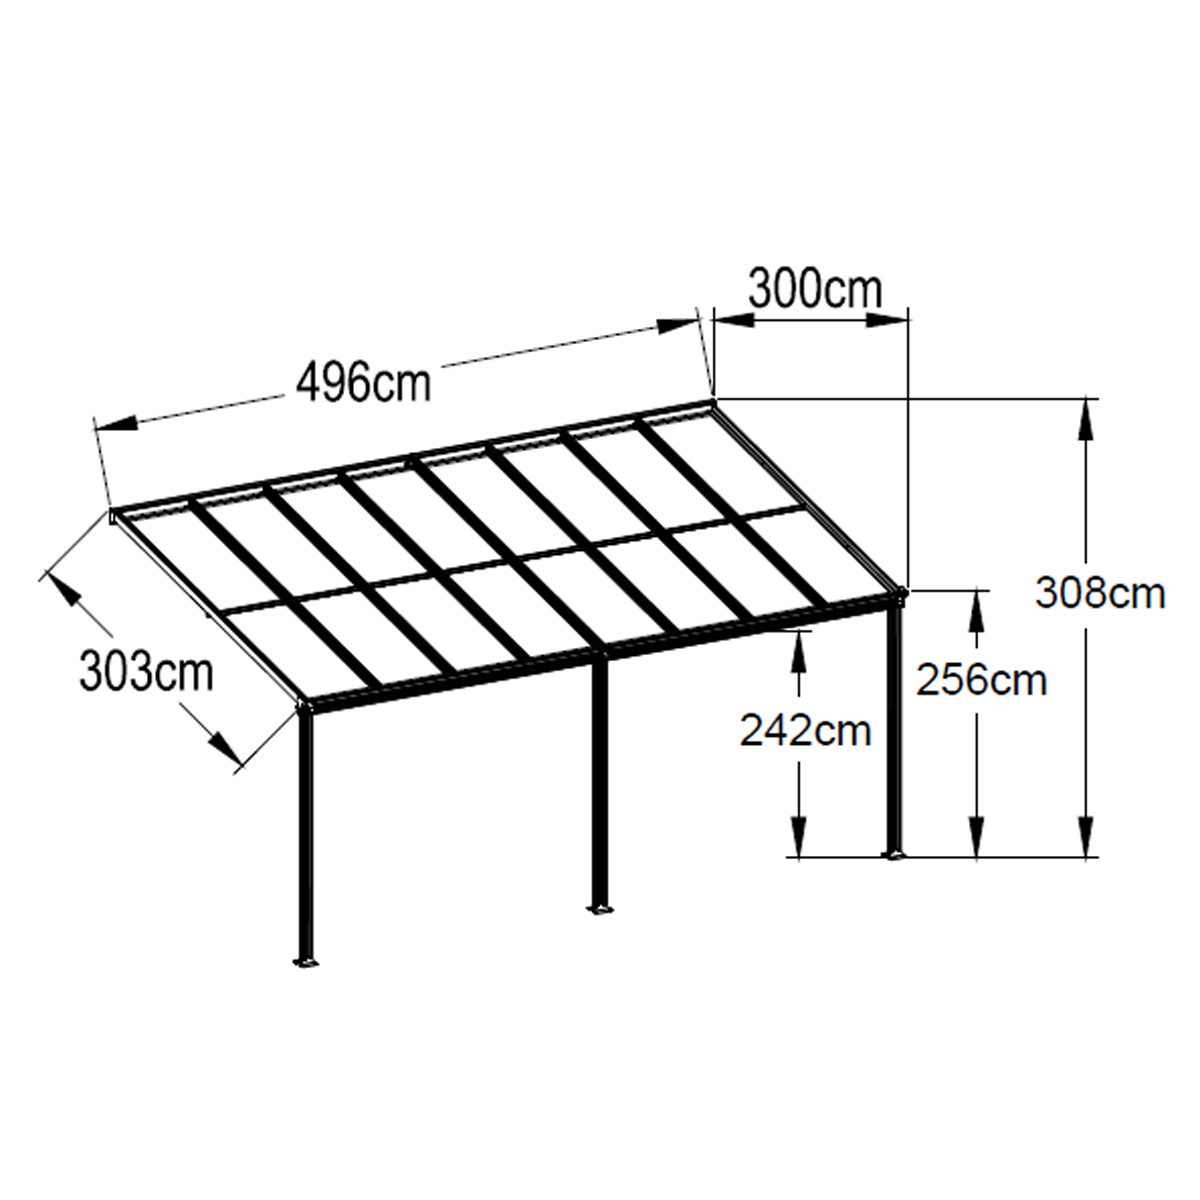 pergola kit aluminium outdoor patio deck cover 5 x 3m